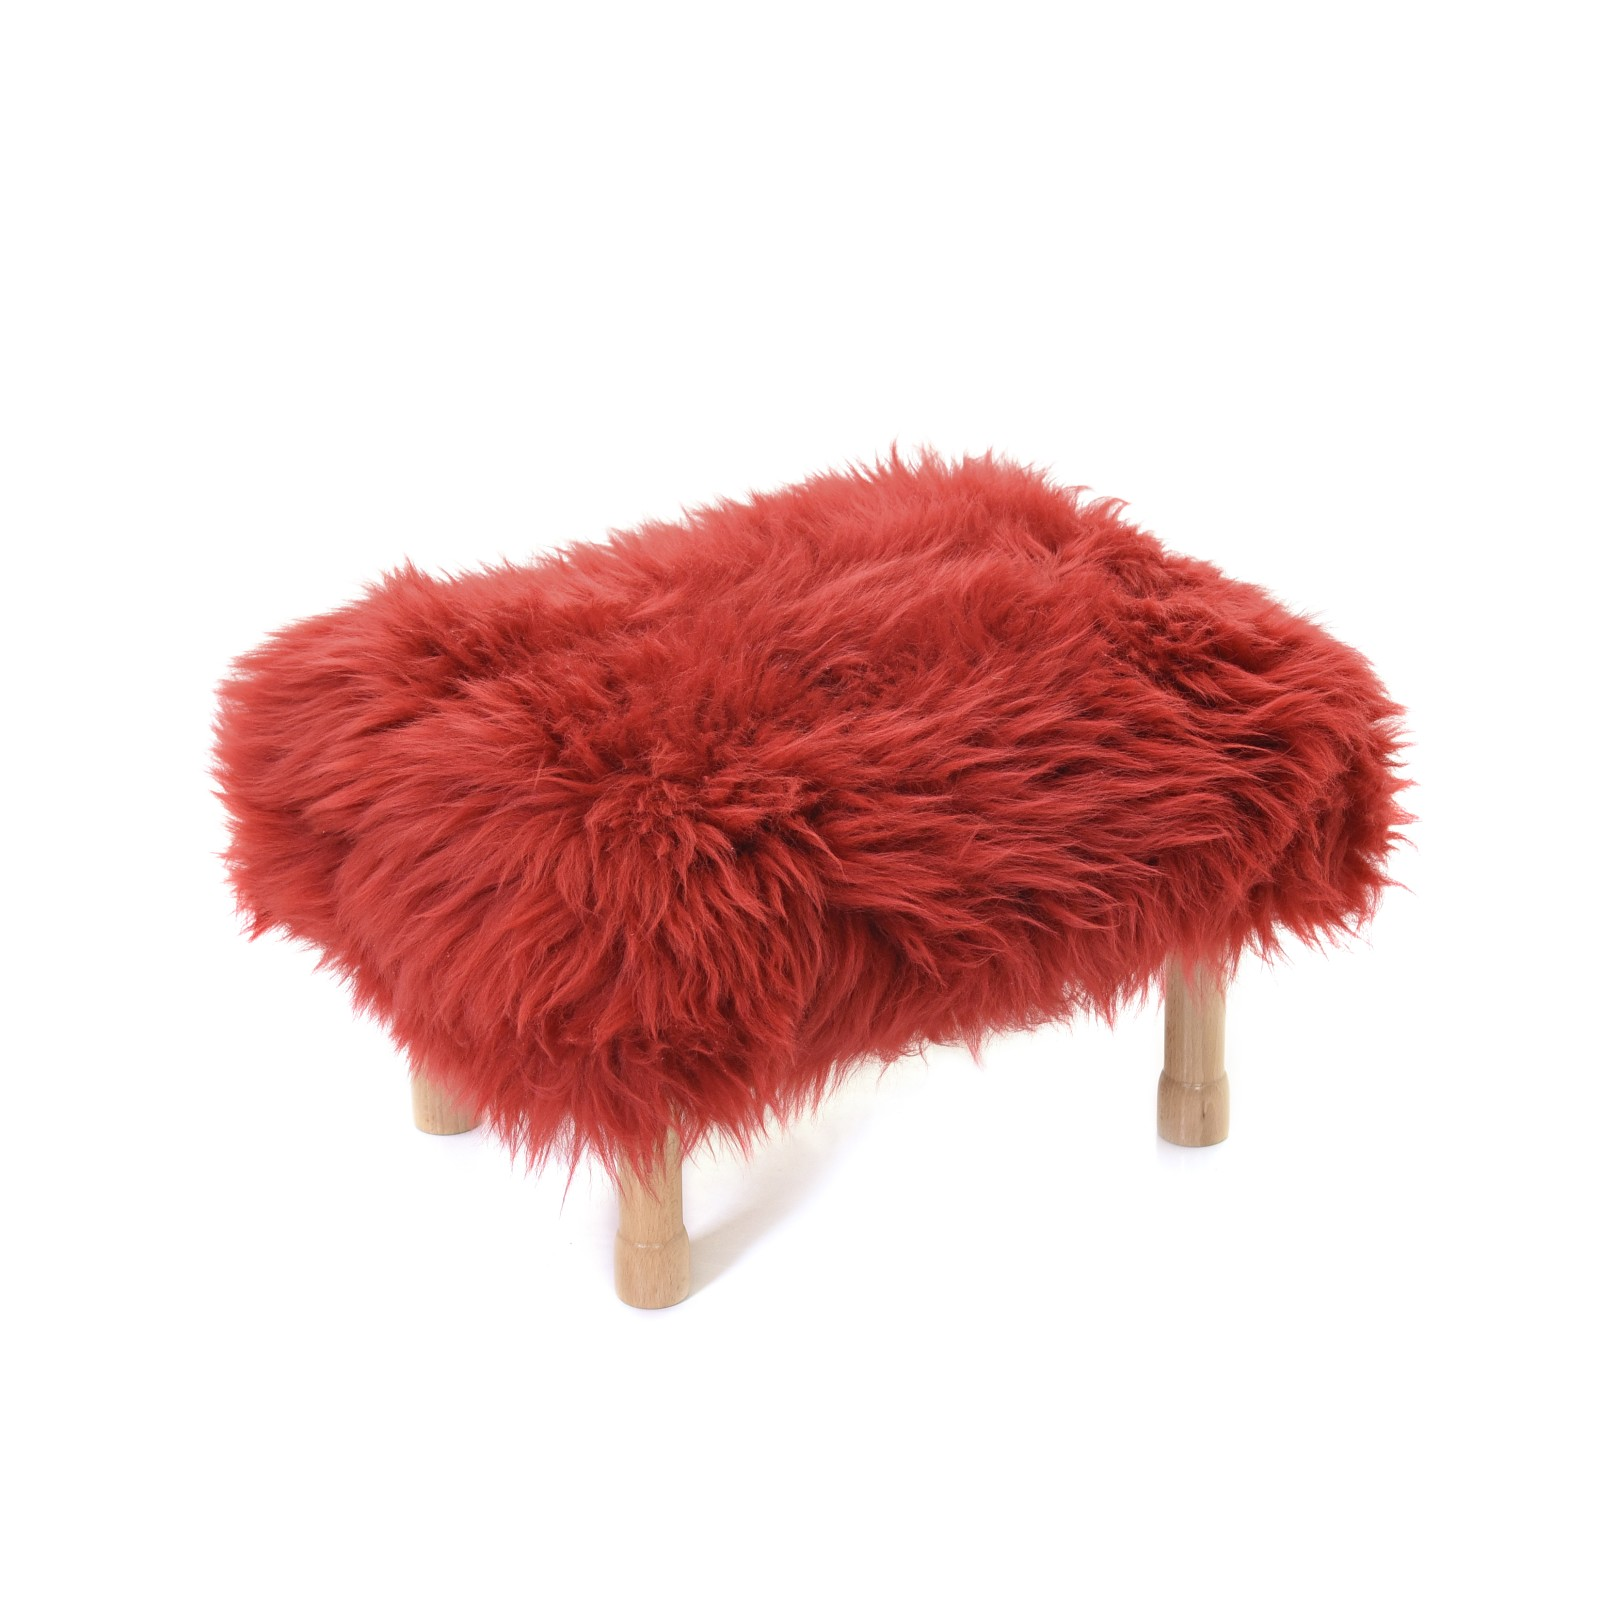 Dilys Sheepskin Footstool Dragon Red